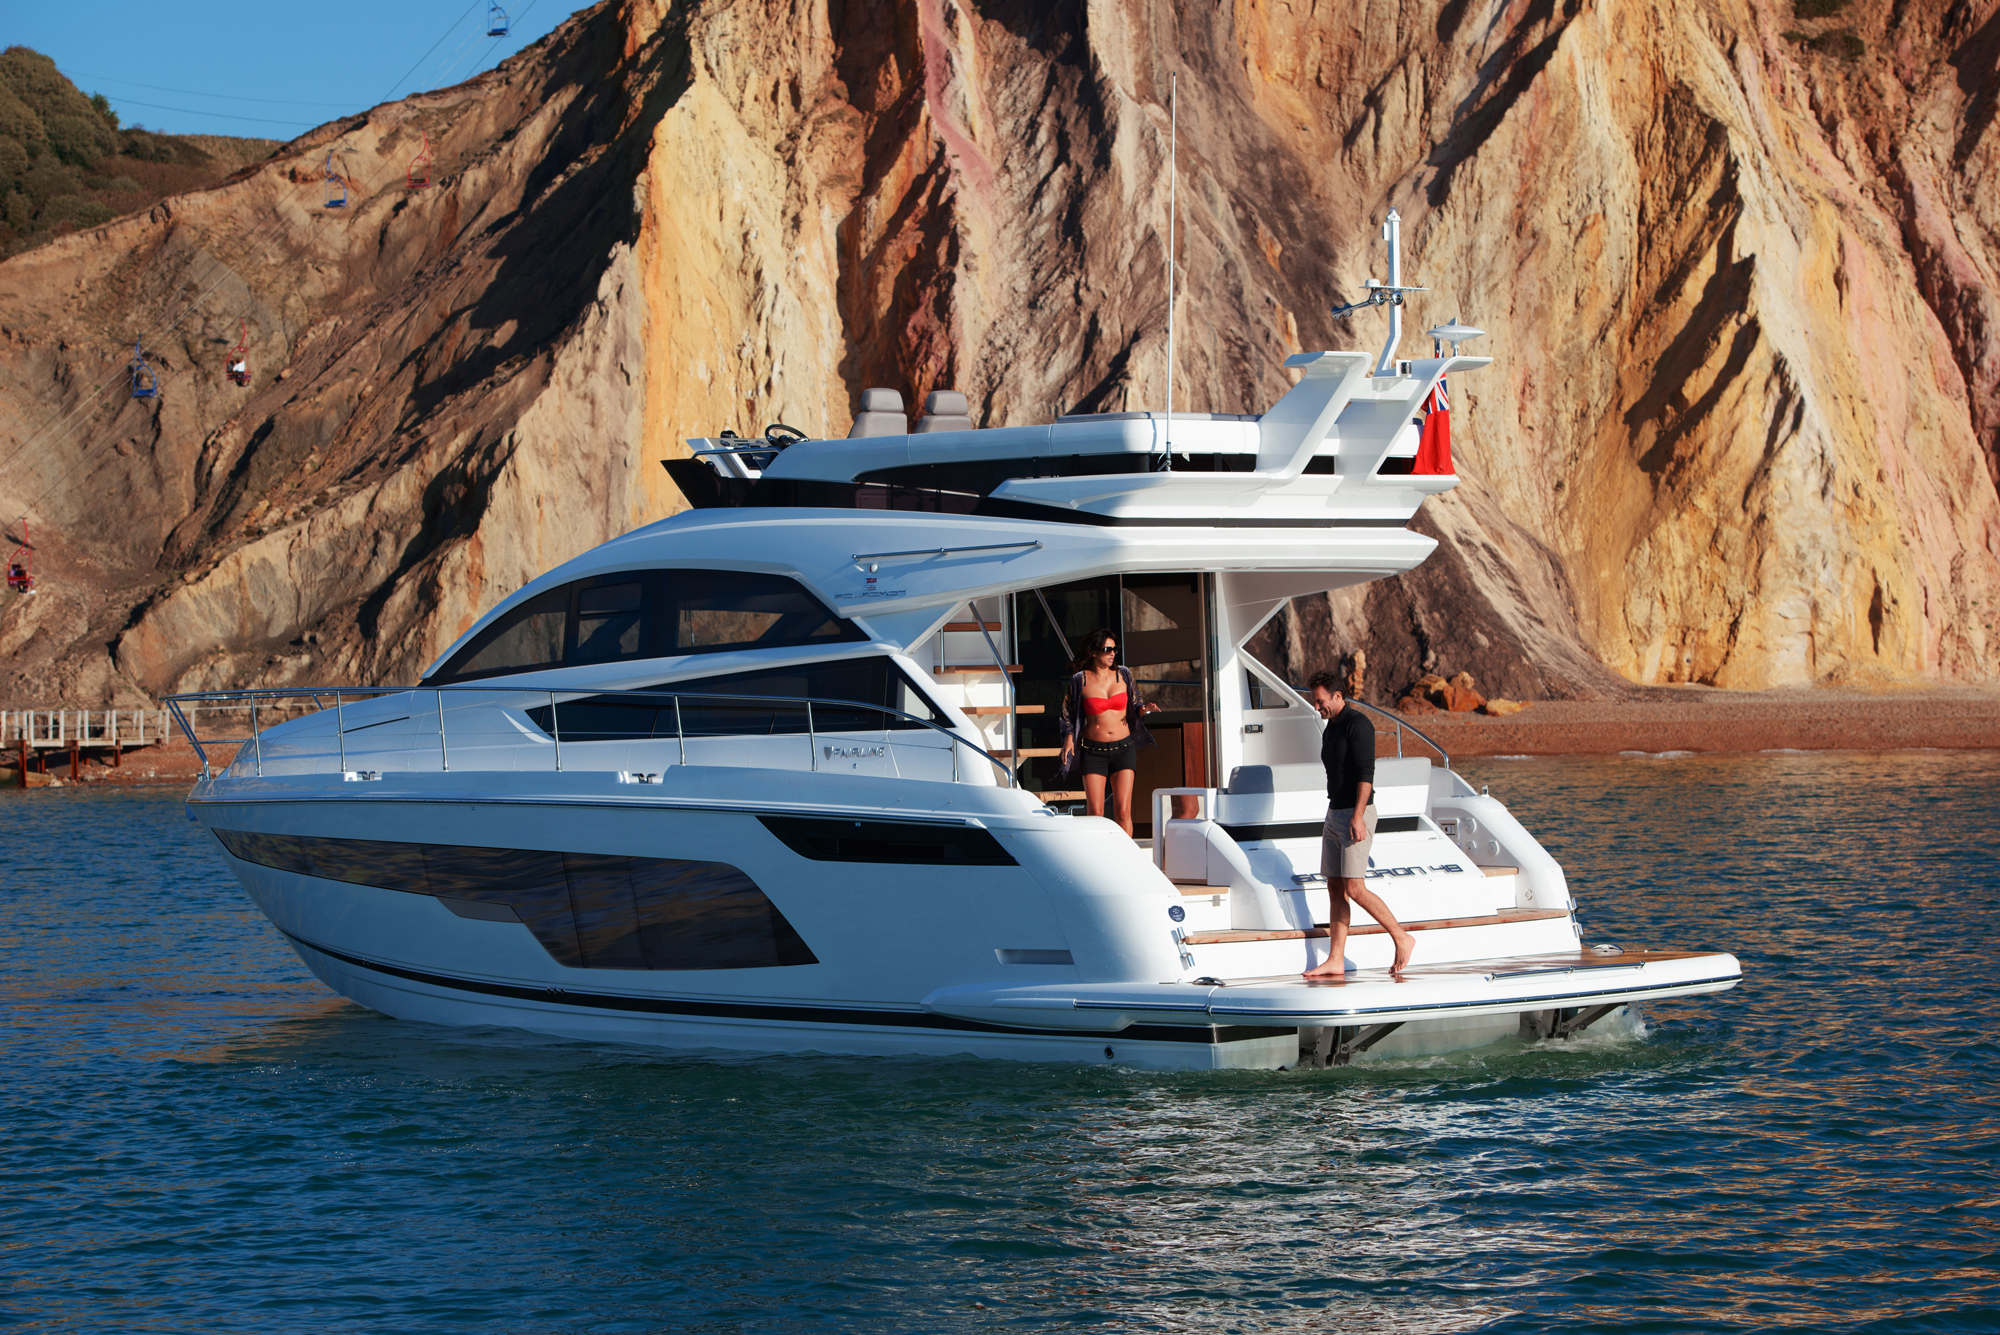 The Dawn Of A New Age – Fairline's Targa 63 GTO To Have US Debut At United States Powerboat Show